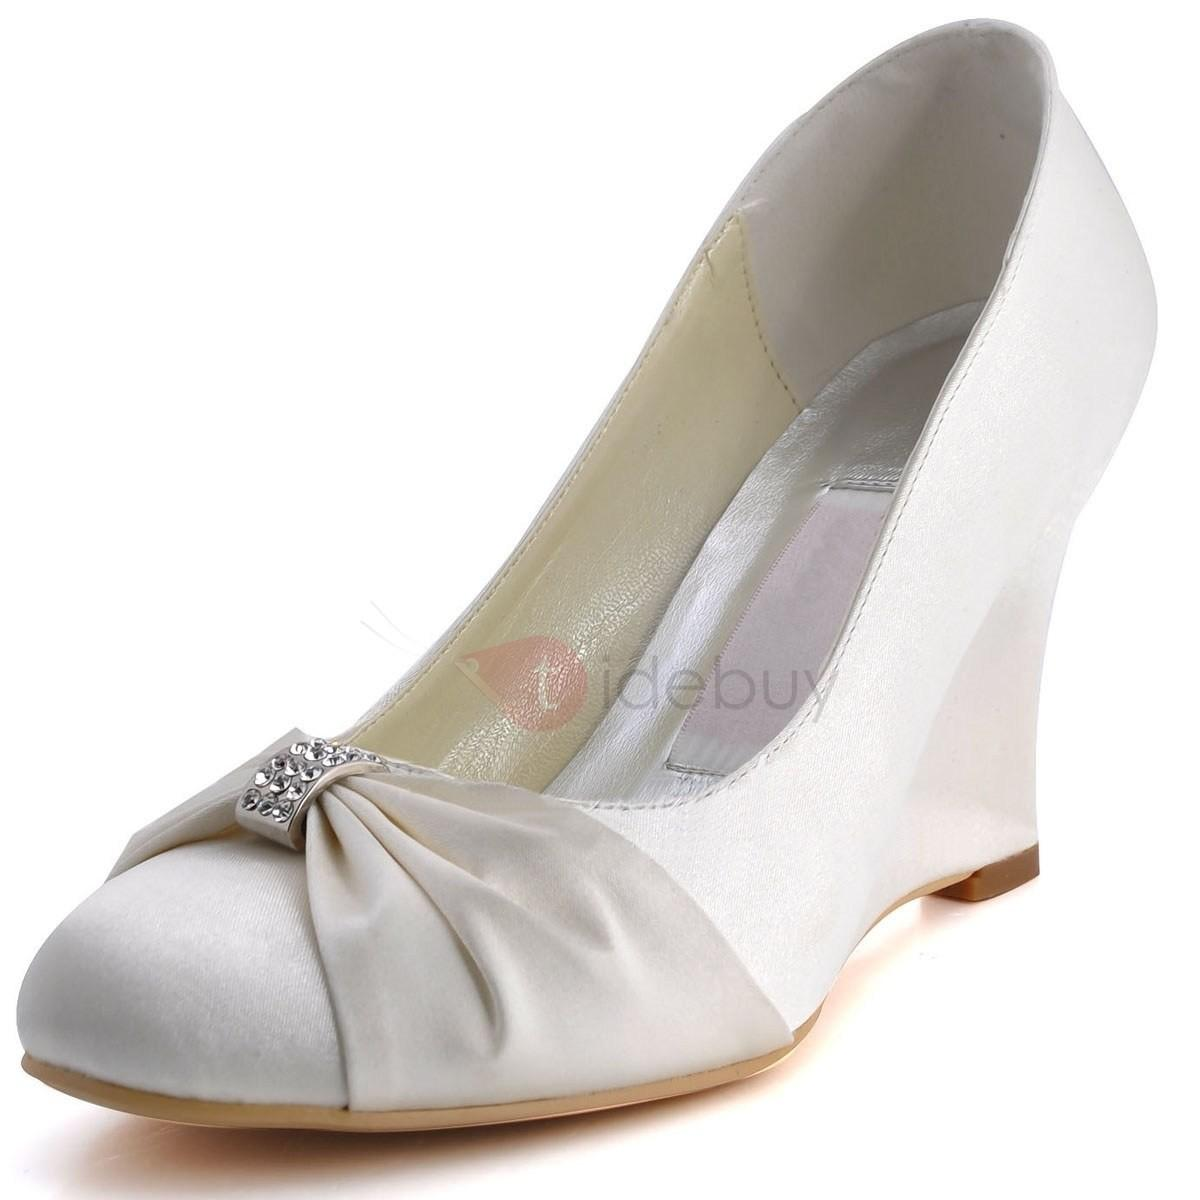 Unique Closed Toe Bow Wedge Heels Wedding Shoes Tidebuy